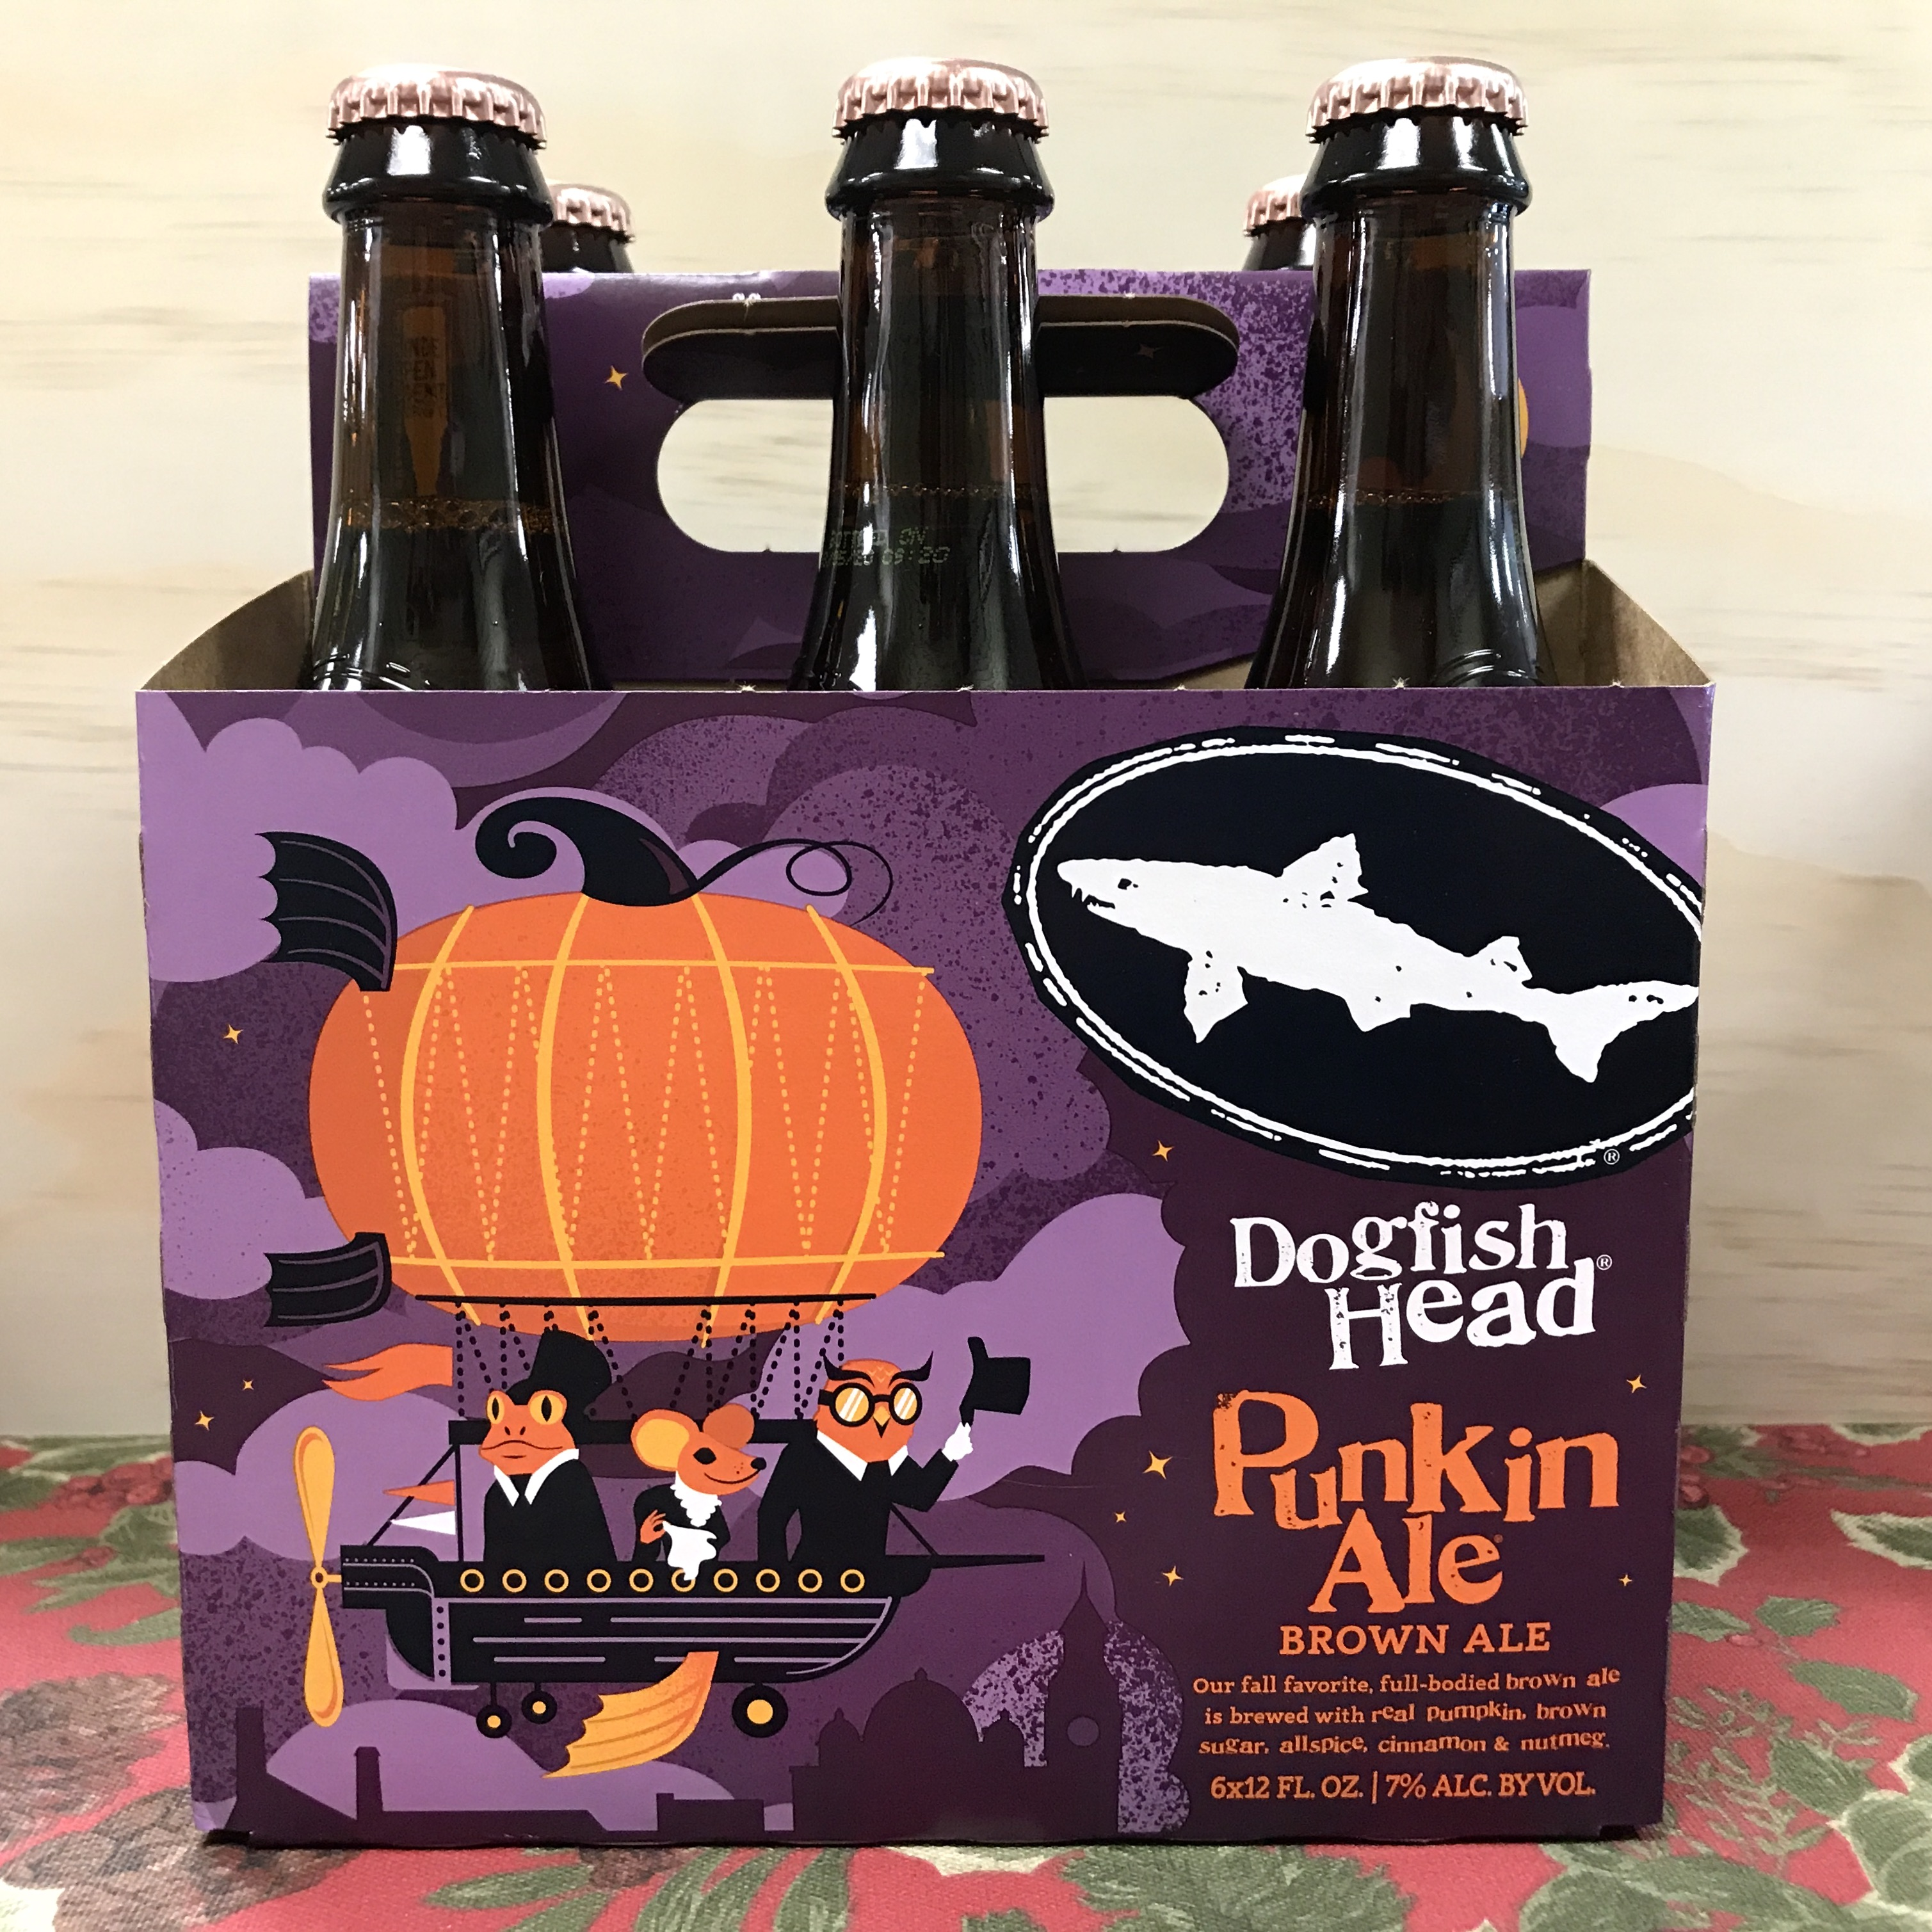 Dogfish Head Punkin Ale Brown Ale 6 x 12 oz bottles